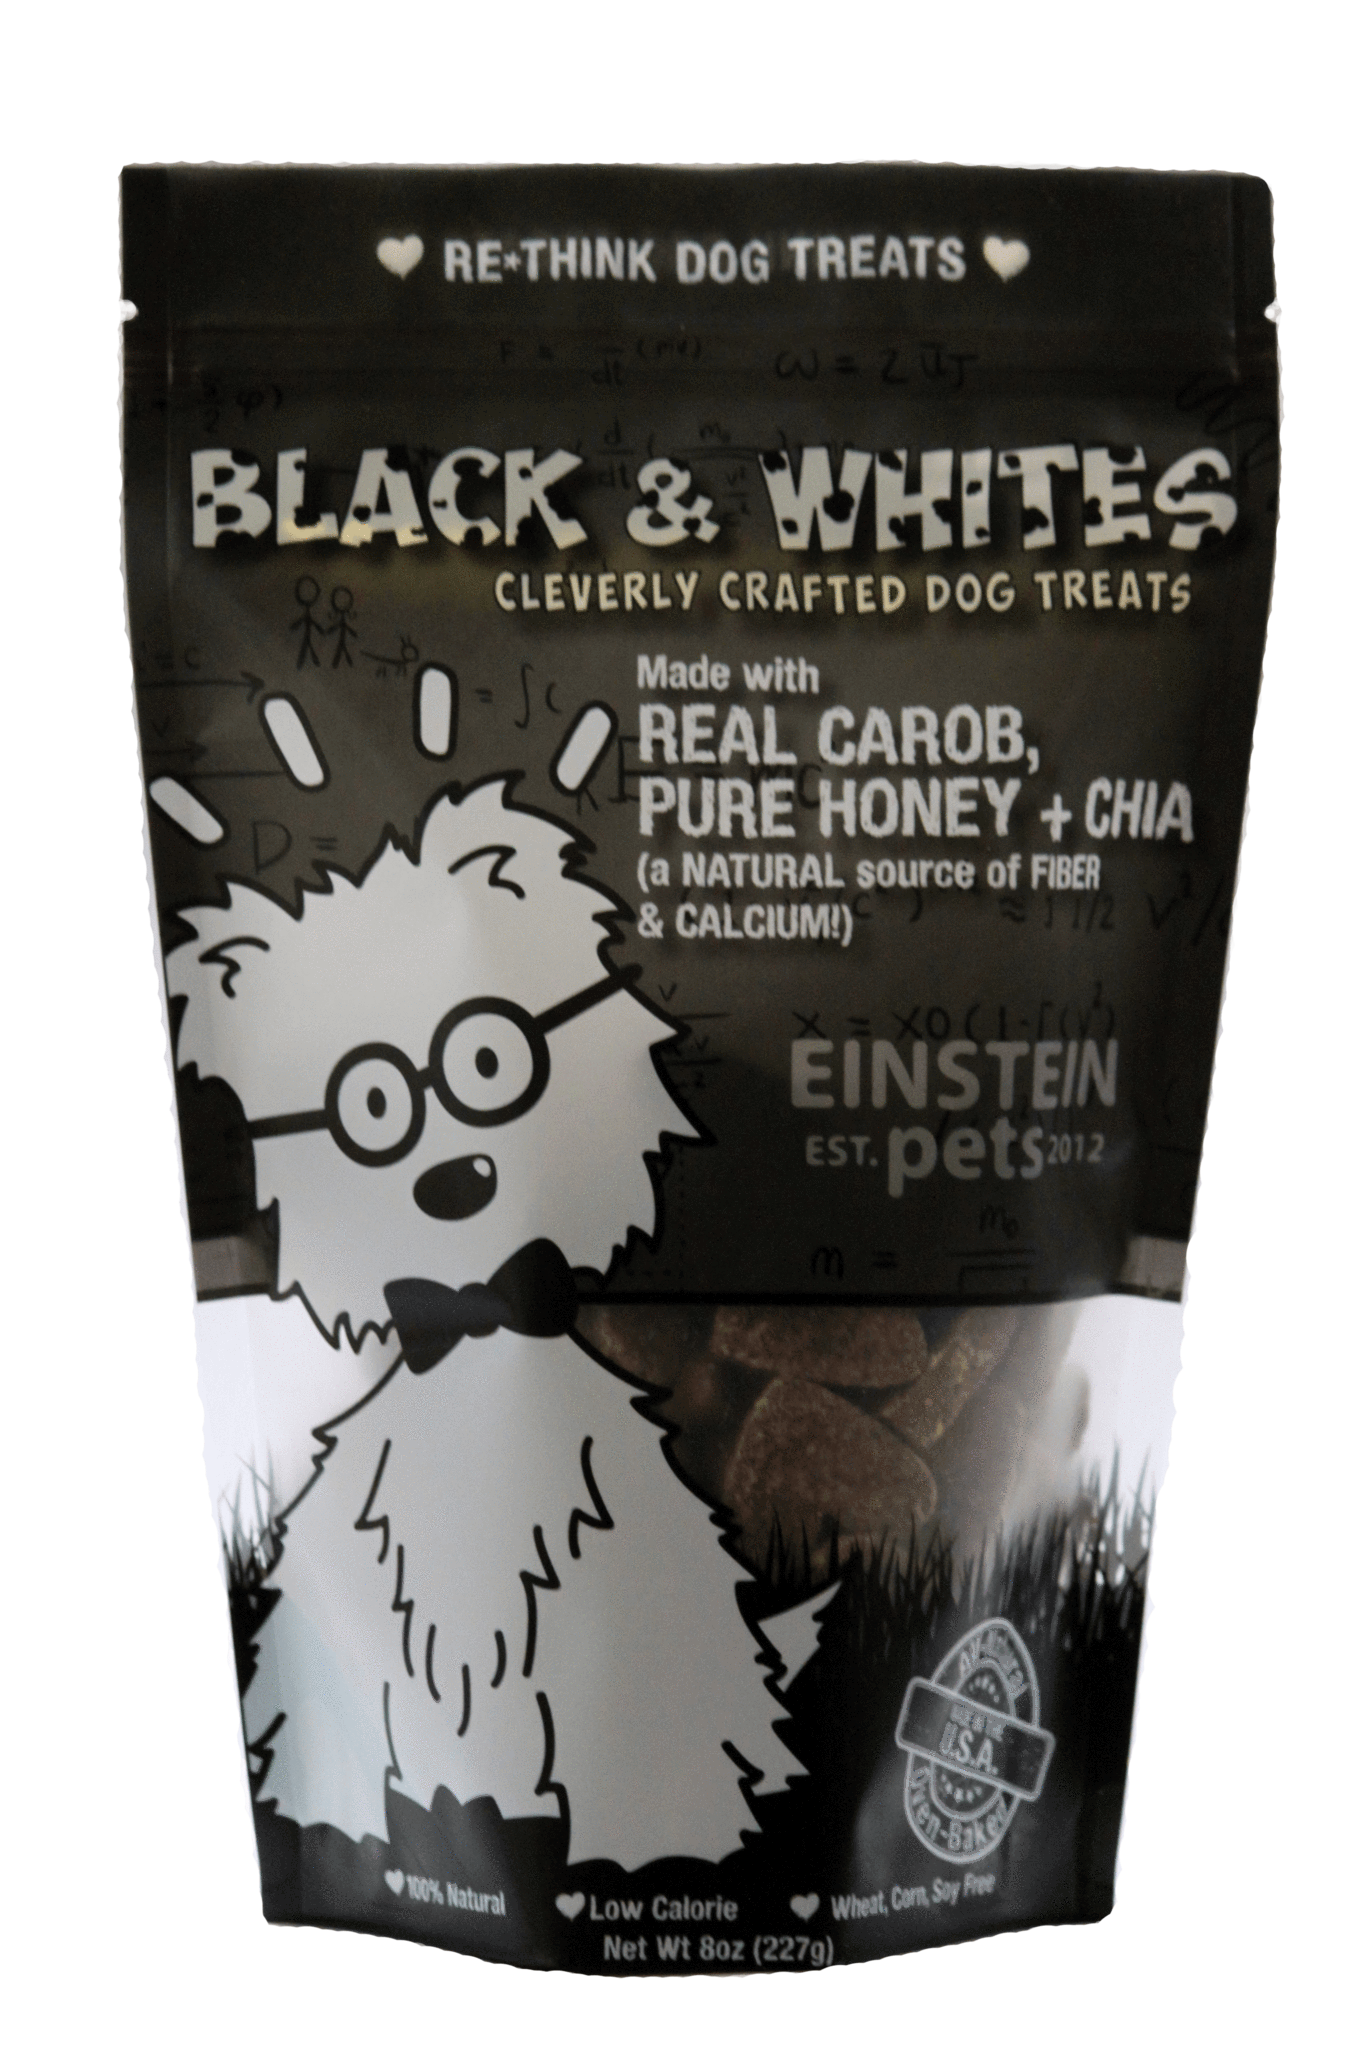 Einstein Pets Treats Black & Whites Image